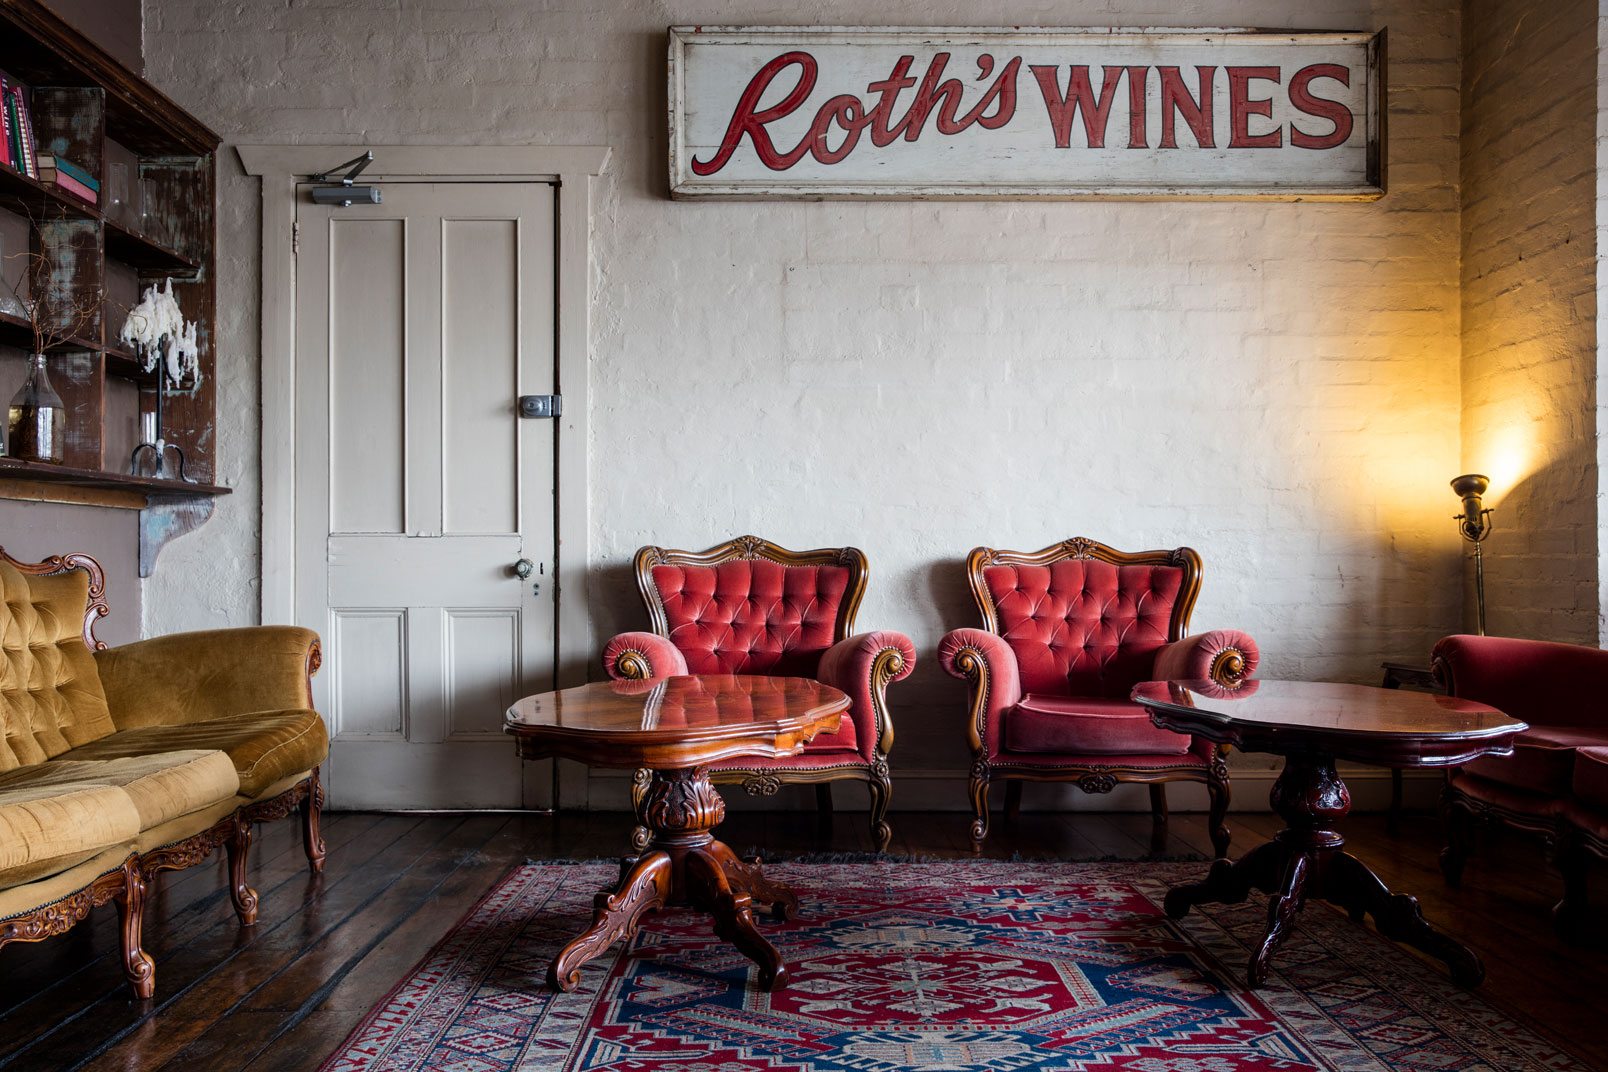 Roths-Wine-Bar_Mudgee_Destination-NSW_James-Horan-0003